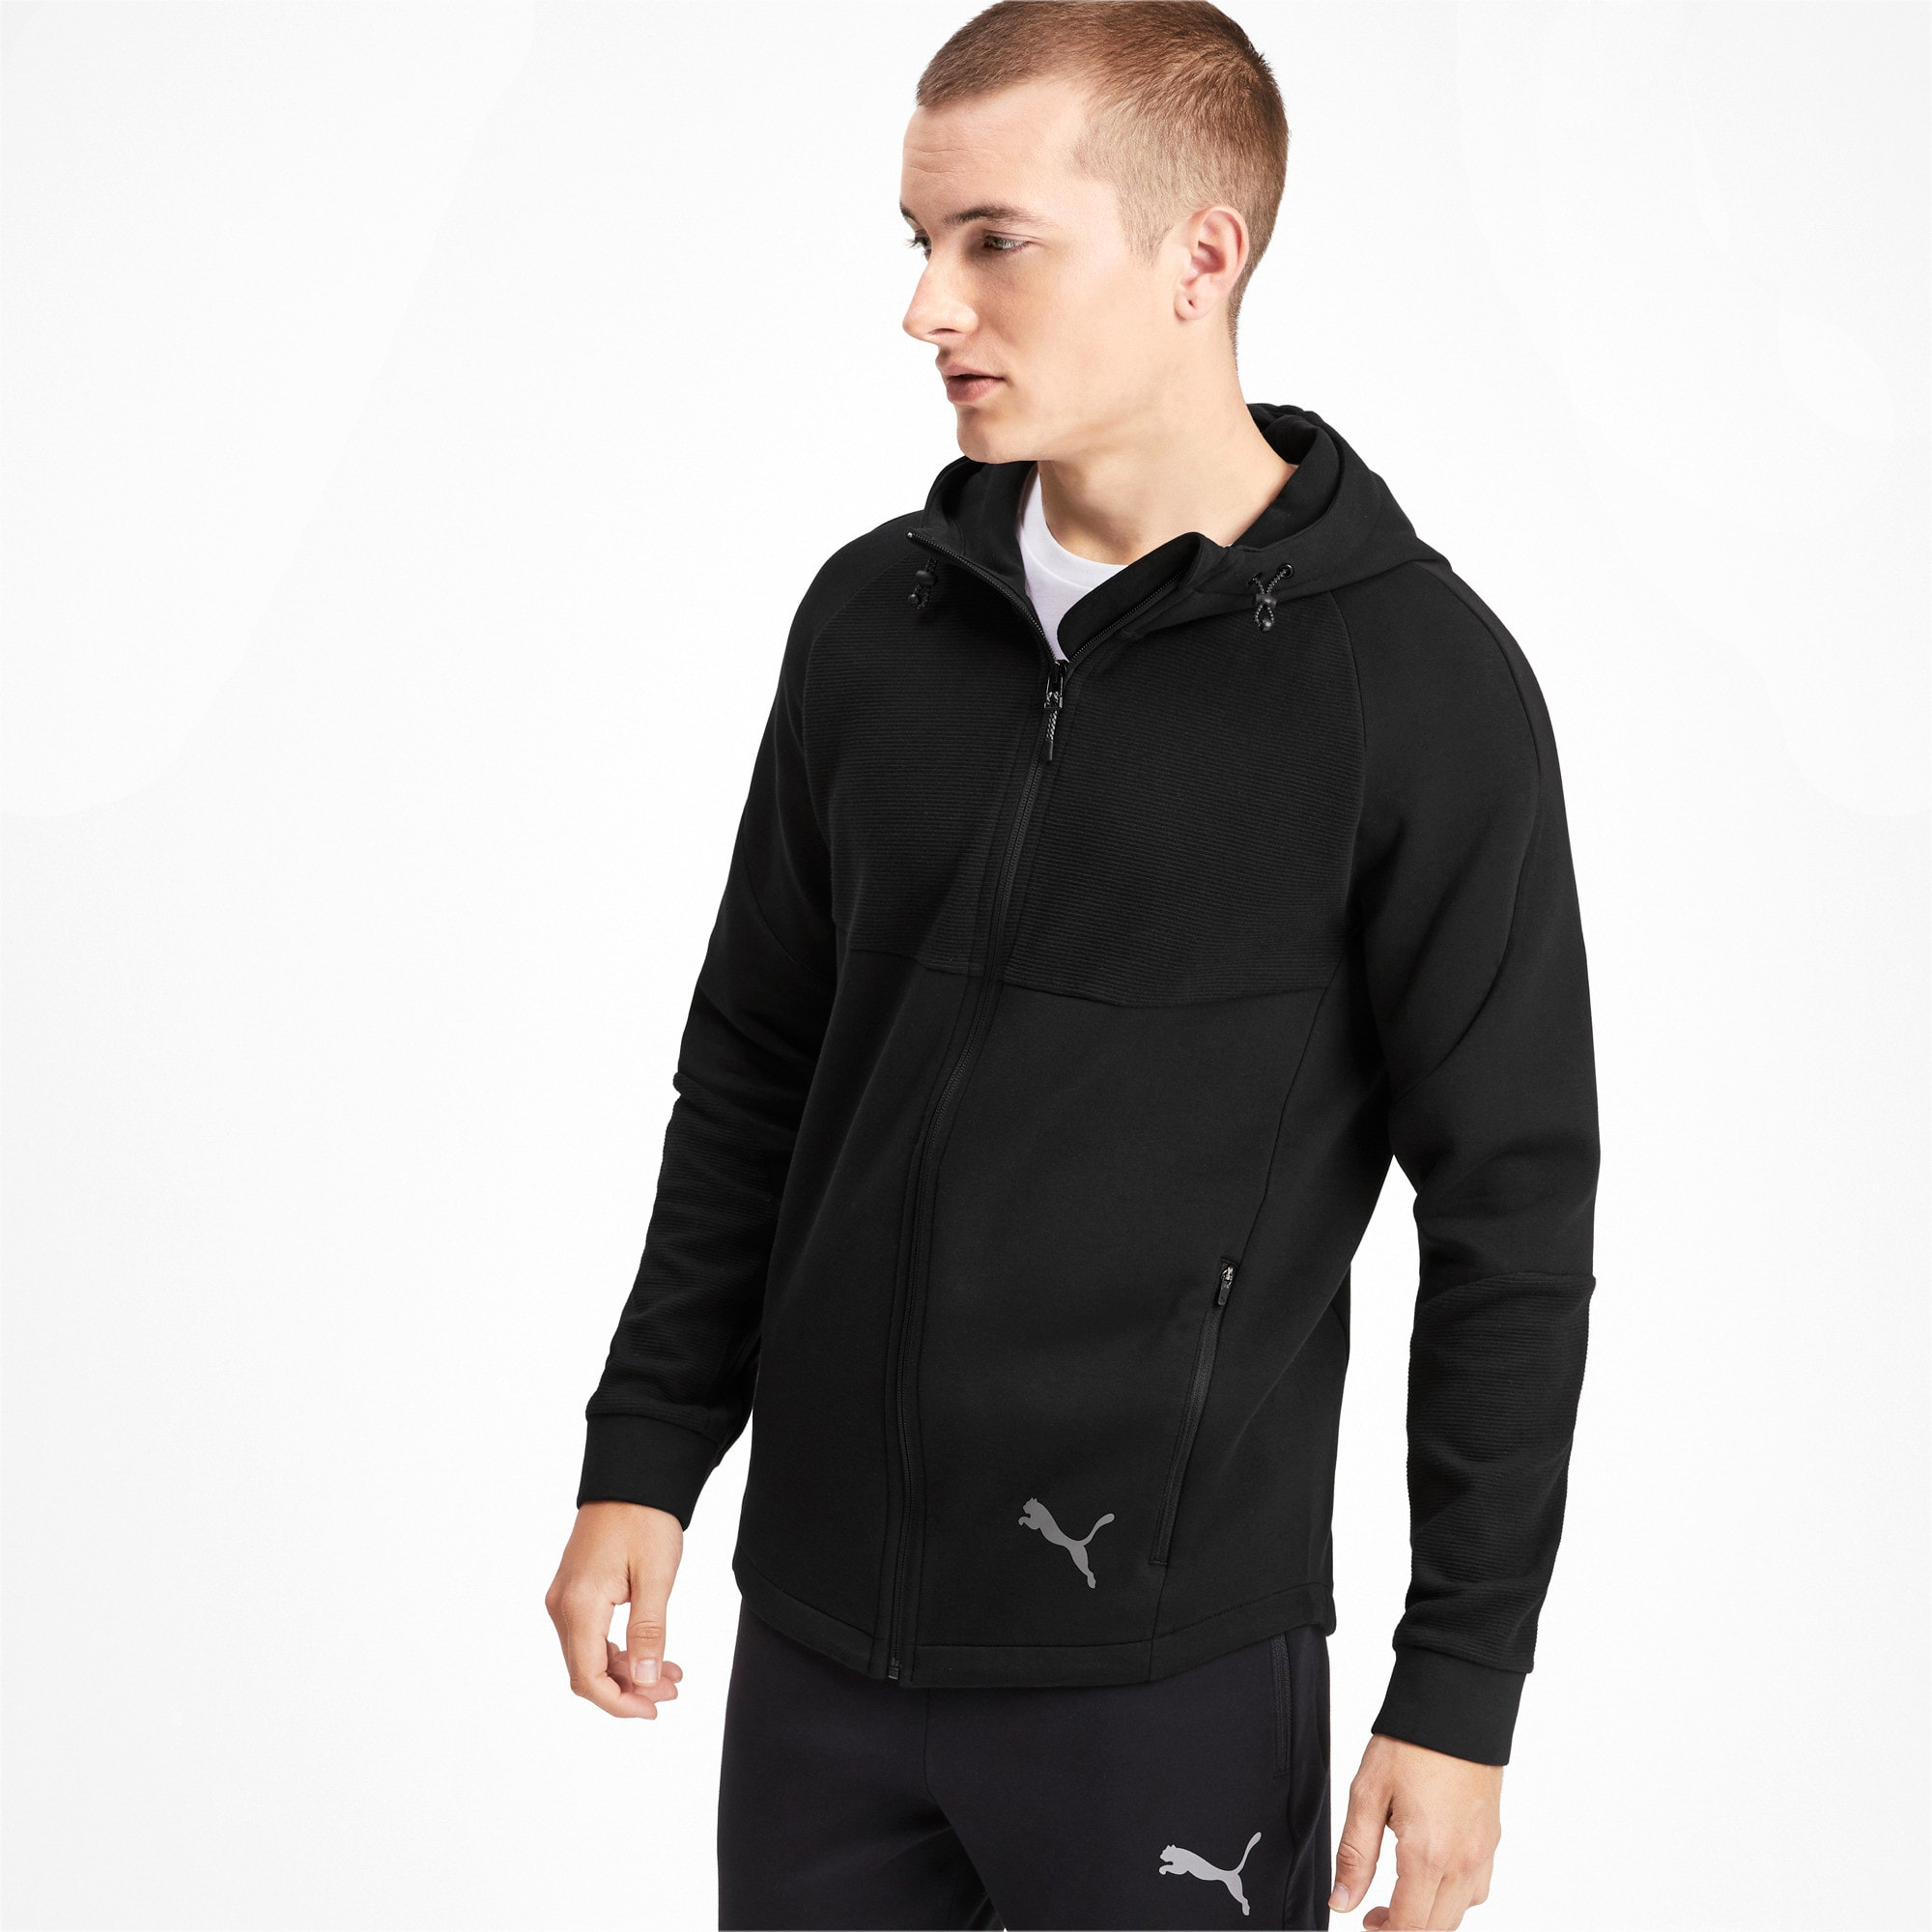 Thumbnail 1 of Evostripe Full Zip Men's Hoodie, Puma Black, medium